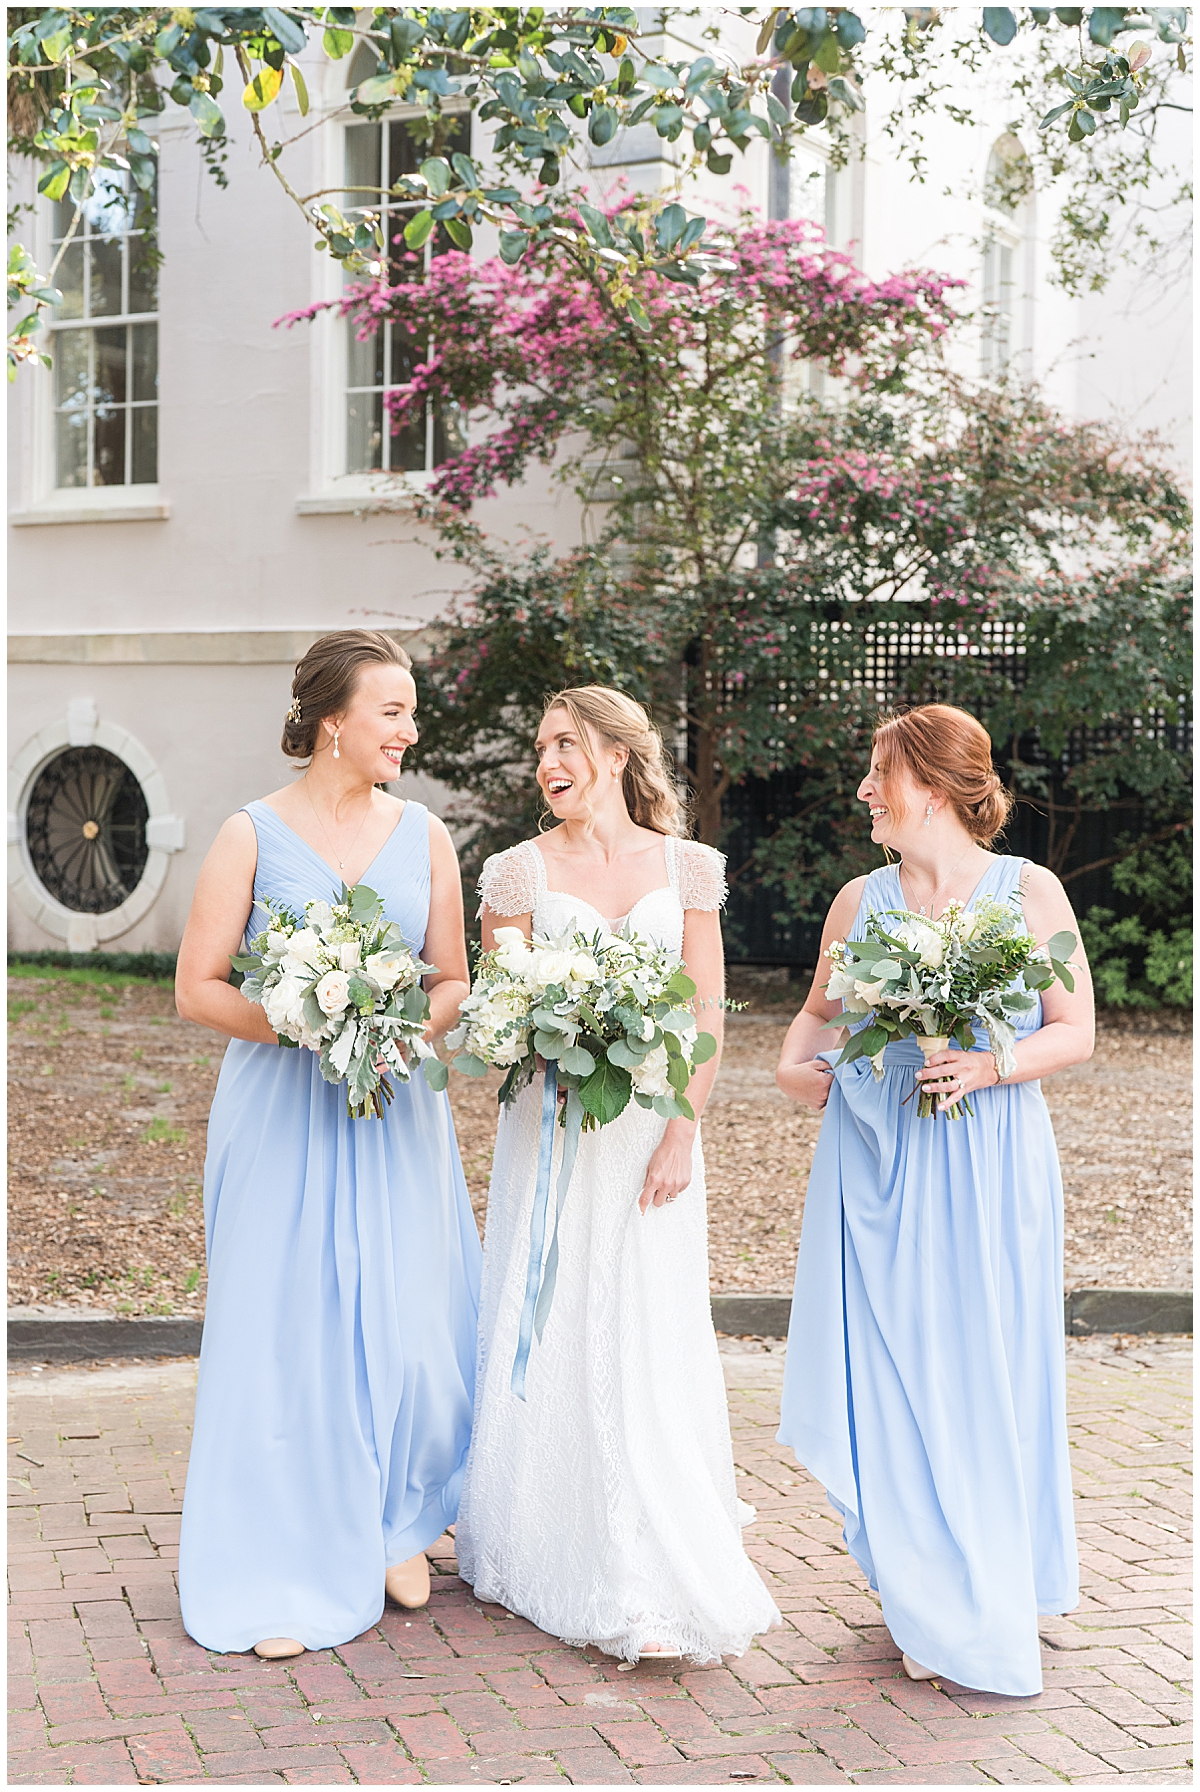 bride walks with bridesmaids in light blue gowns